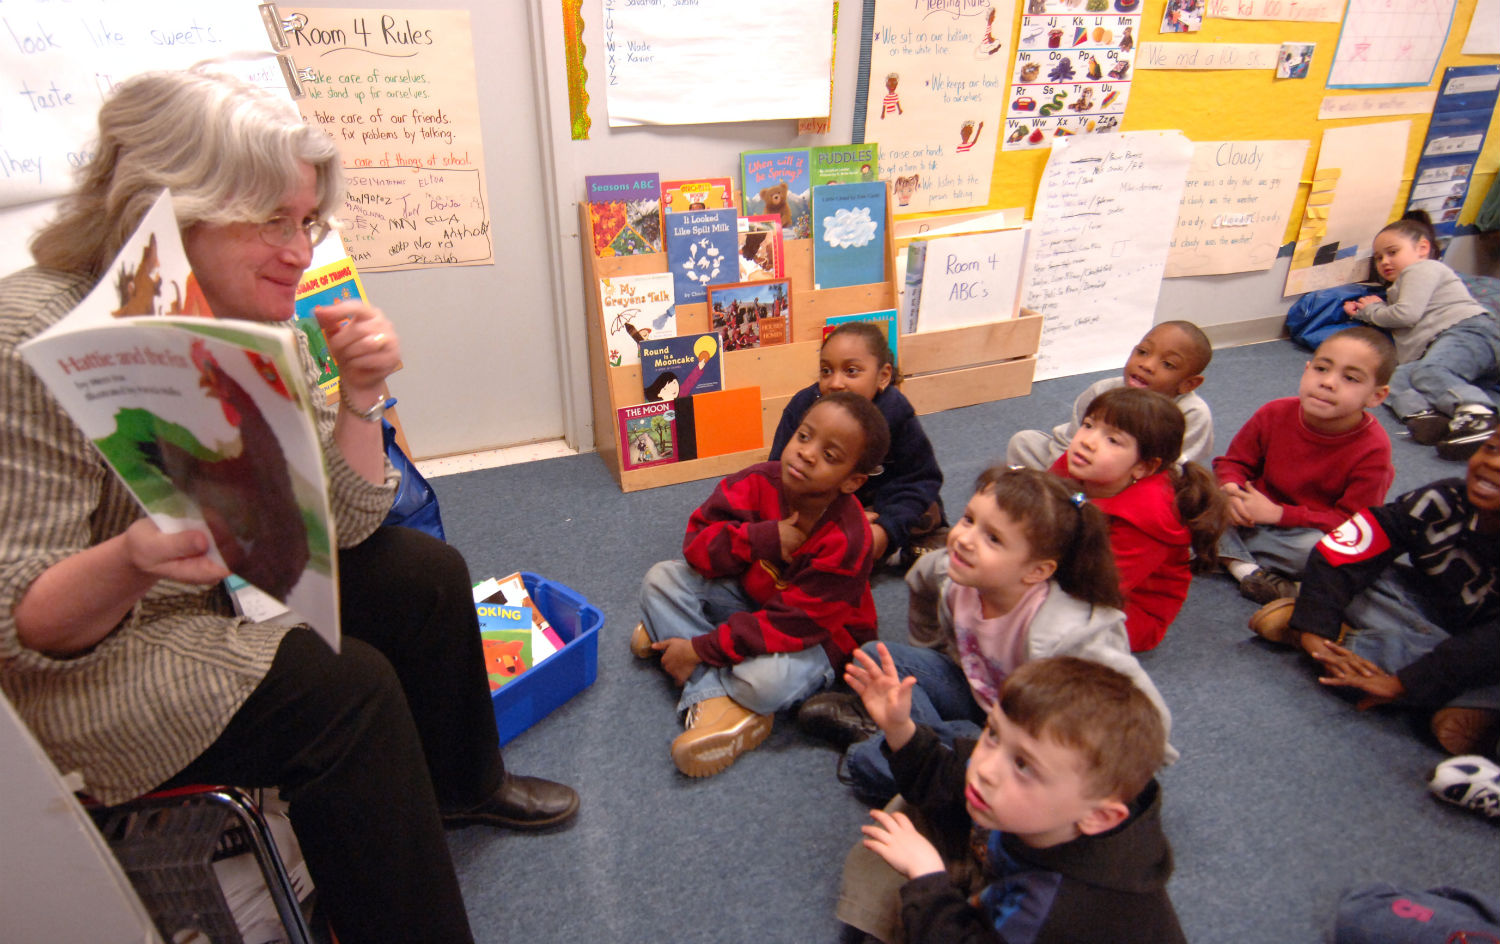 pChildren-who-attend-high-quality-preschool-achieve-higher-test-scores.-AP-PhotoDouglas-Healeyp